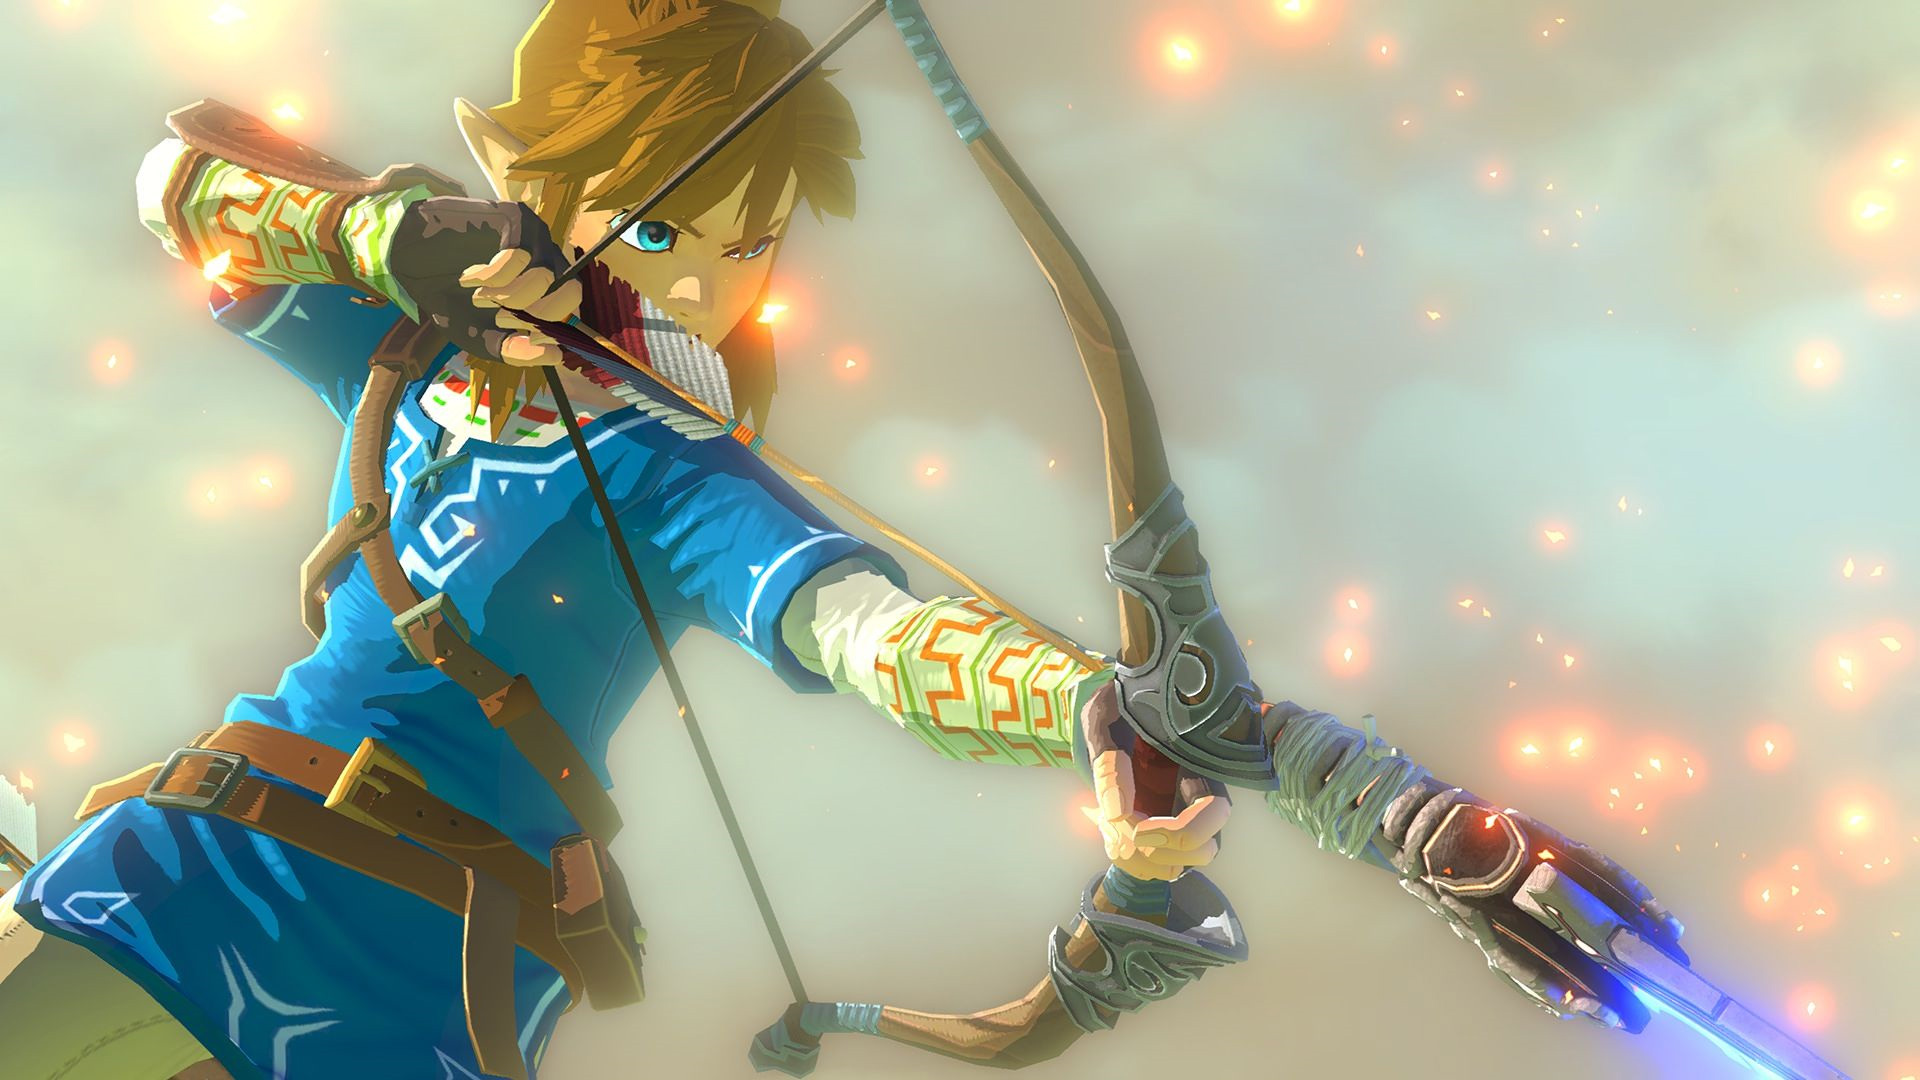 The Legend of Zelda is My Most Anticipated E3 Game